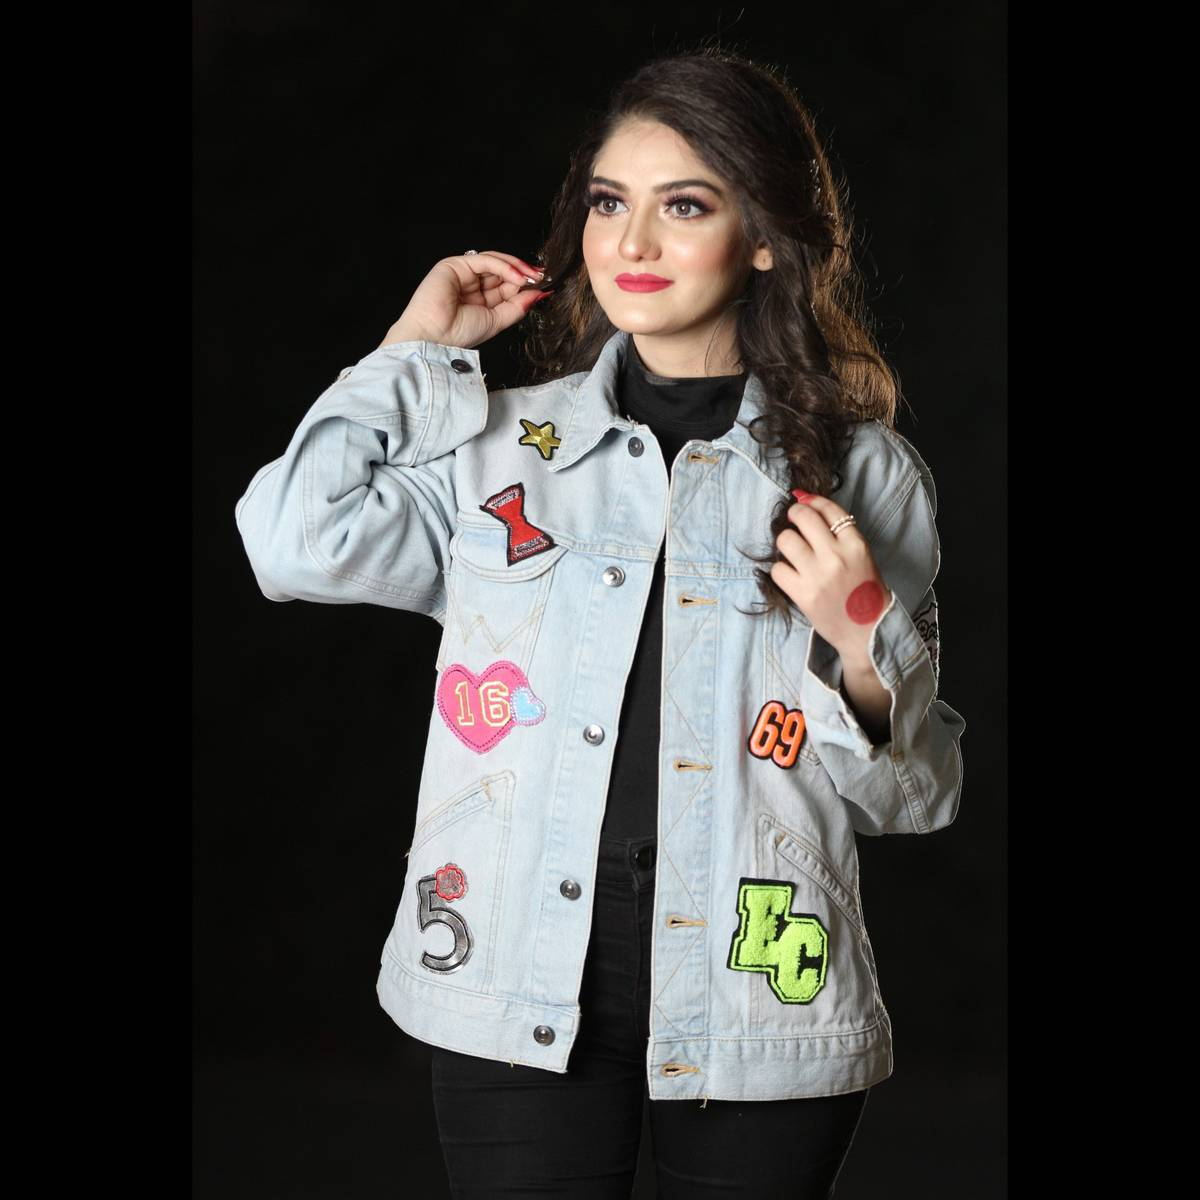 LA CASA Denim Jacket For Women - Jeans Jacket with Iron on Embroidered Patch Sew on Badge